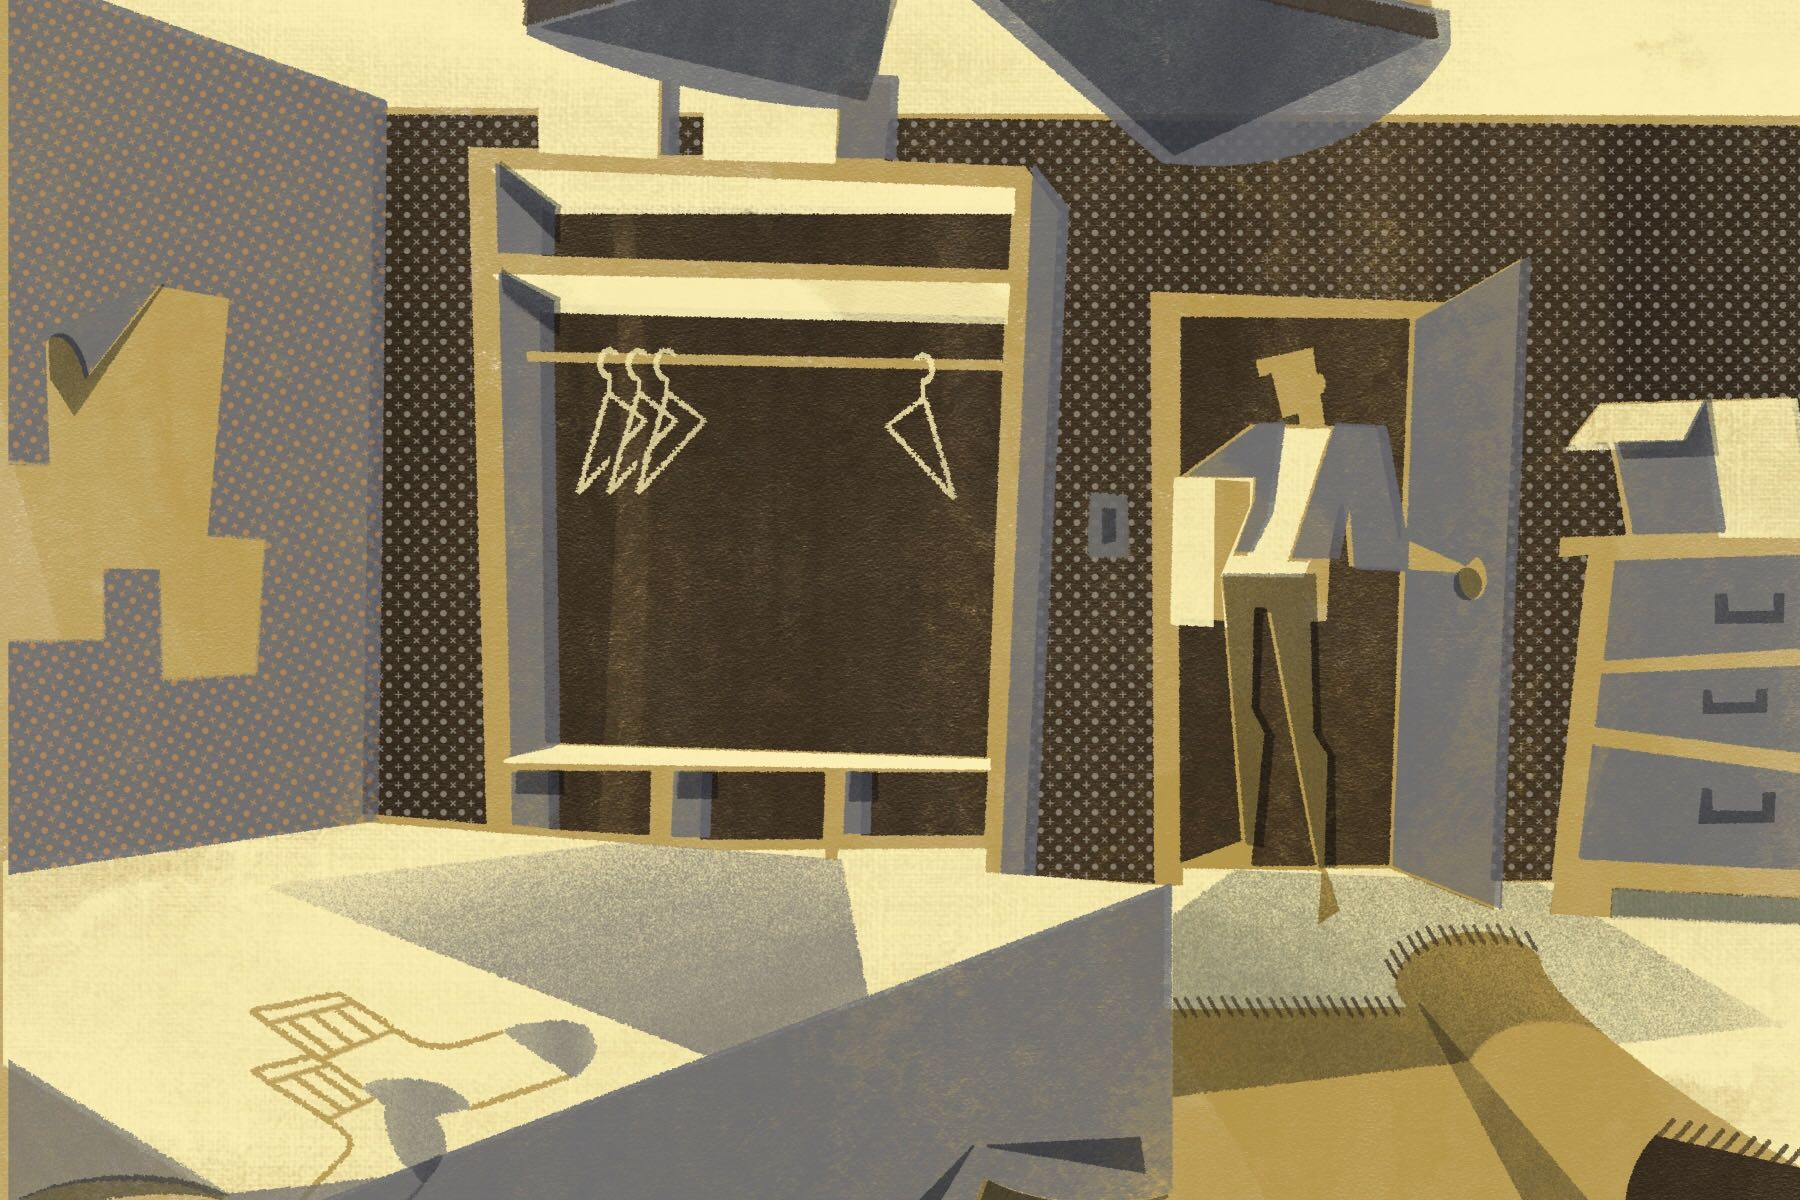 Illustration of dorm room, person moving out into their own space